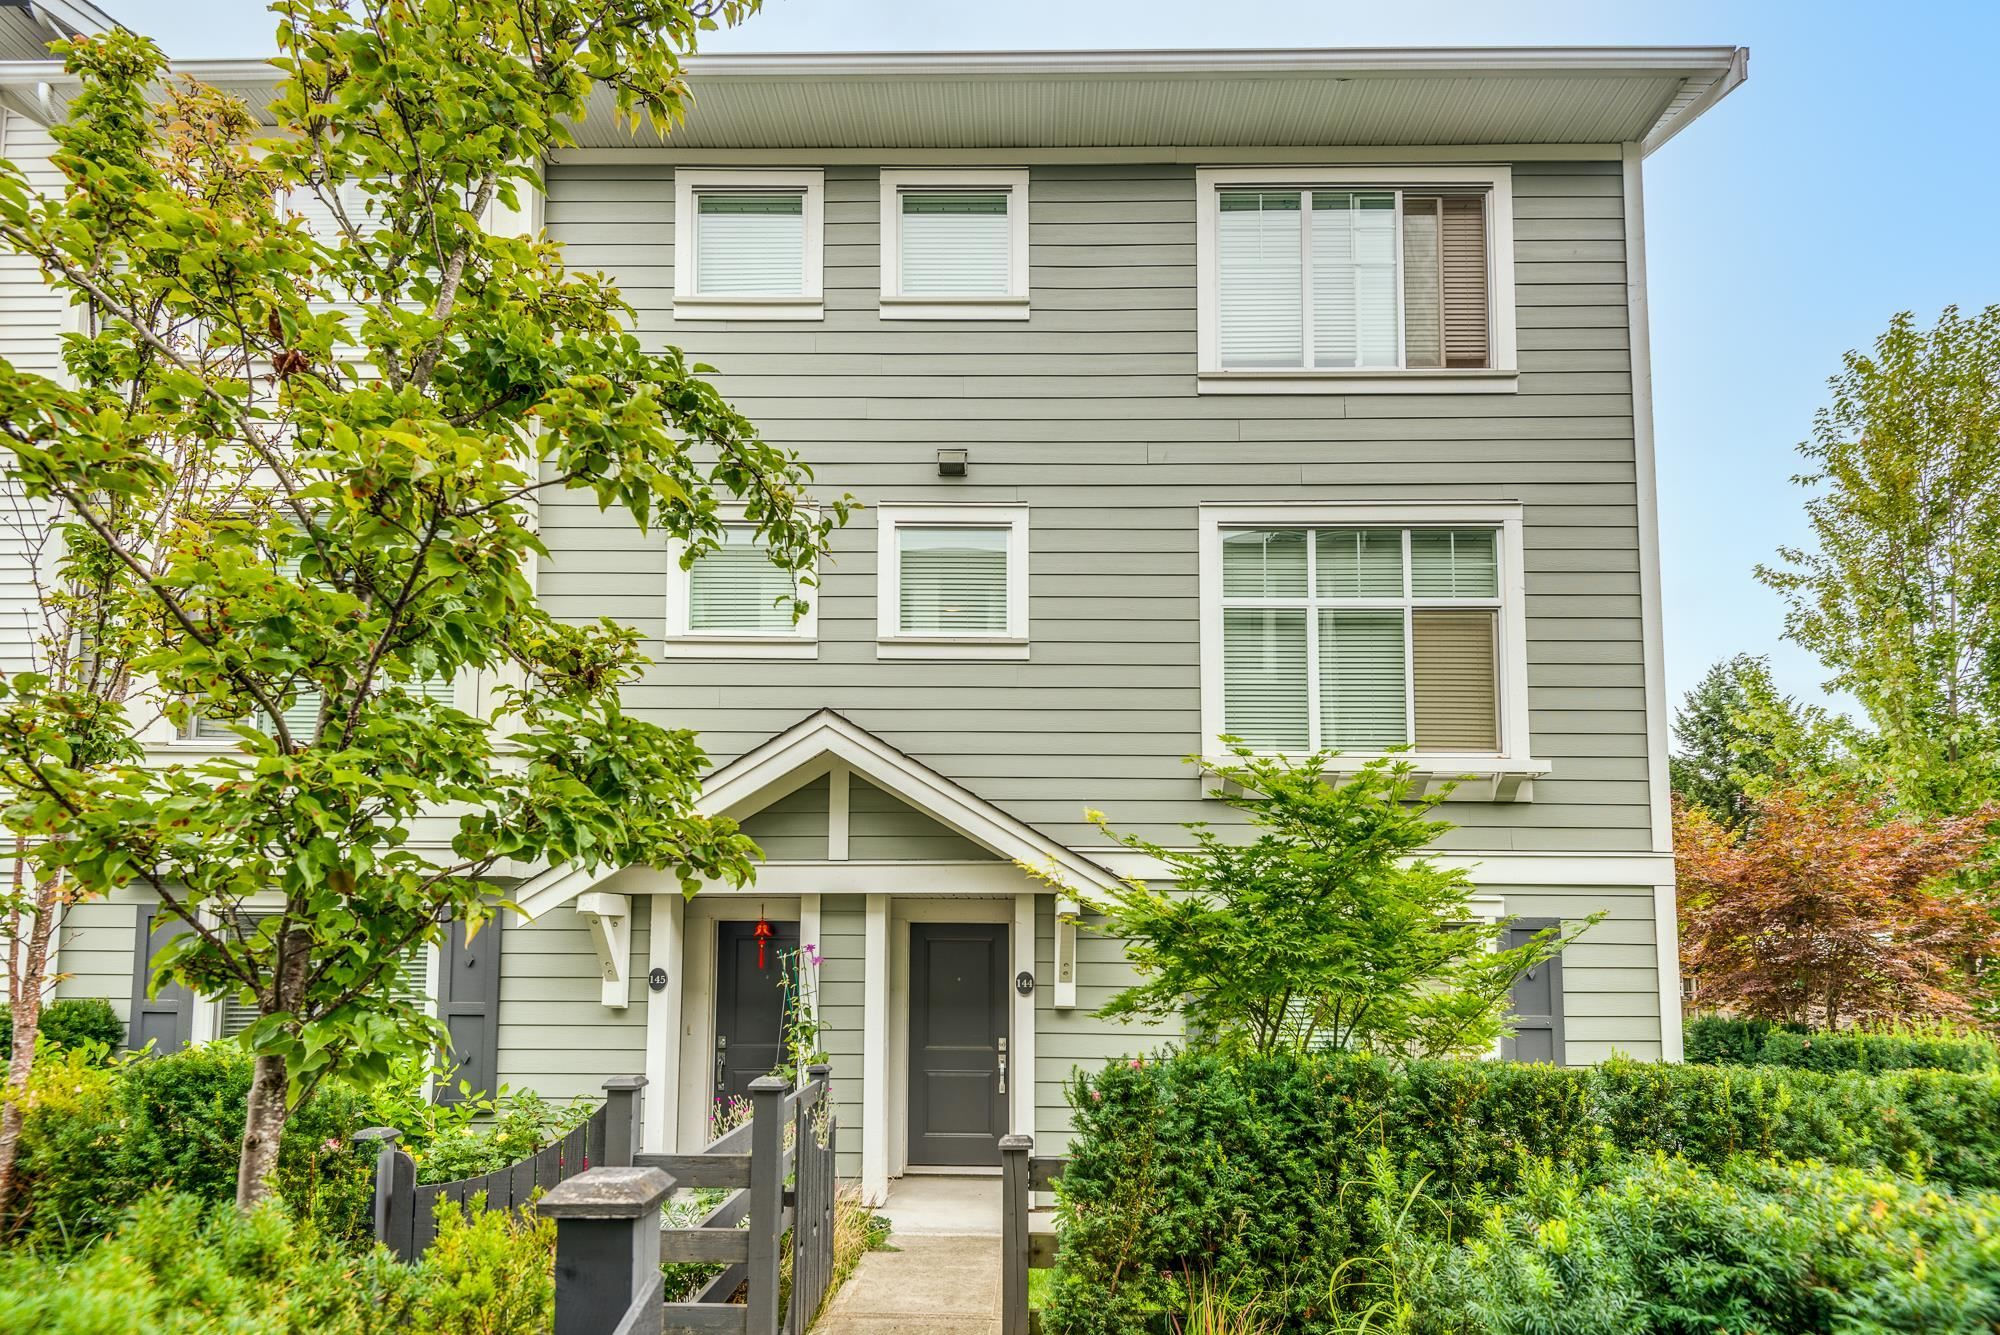 """Main Photo: 144 15230 GUILDFORD Drive in Surrey: Guildford Townhouse for sale in """"GUILDFORD THE GREAT"""" (North Surrey)  : MLS®# R2610132"""